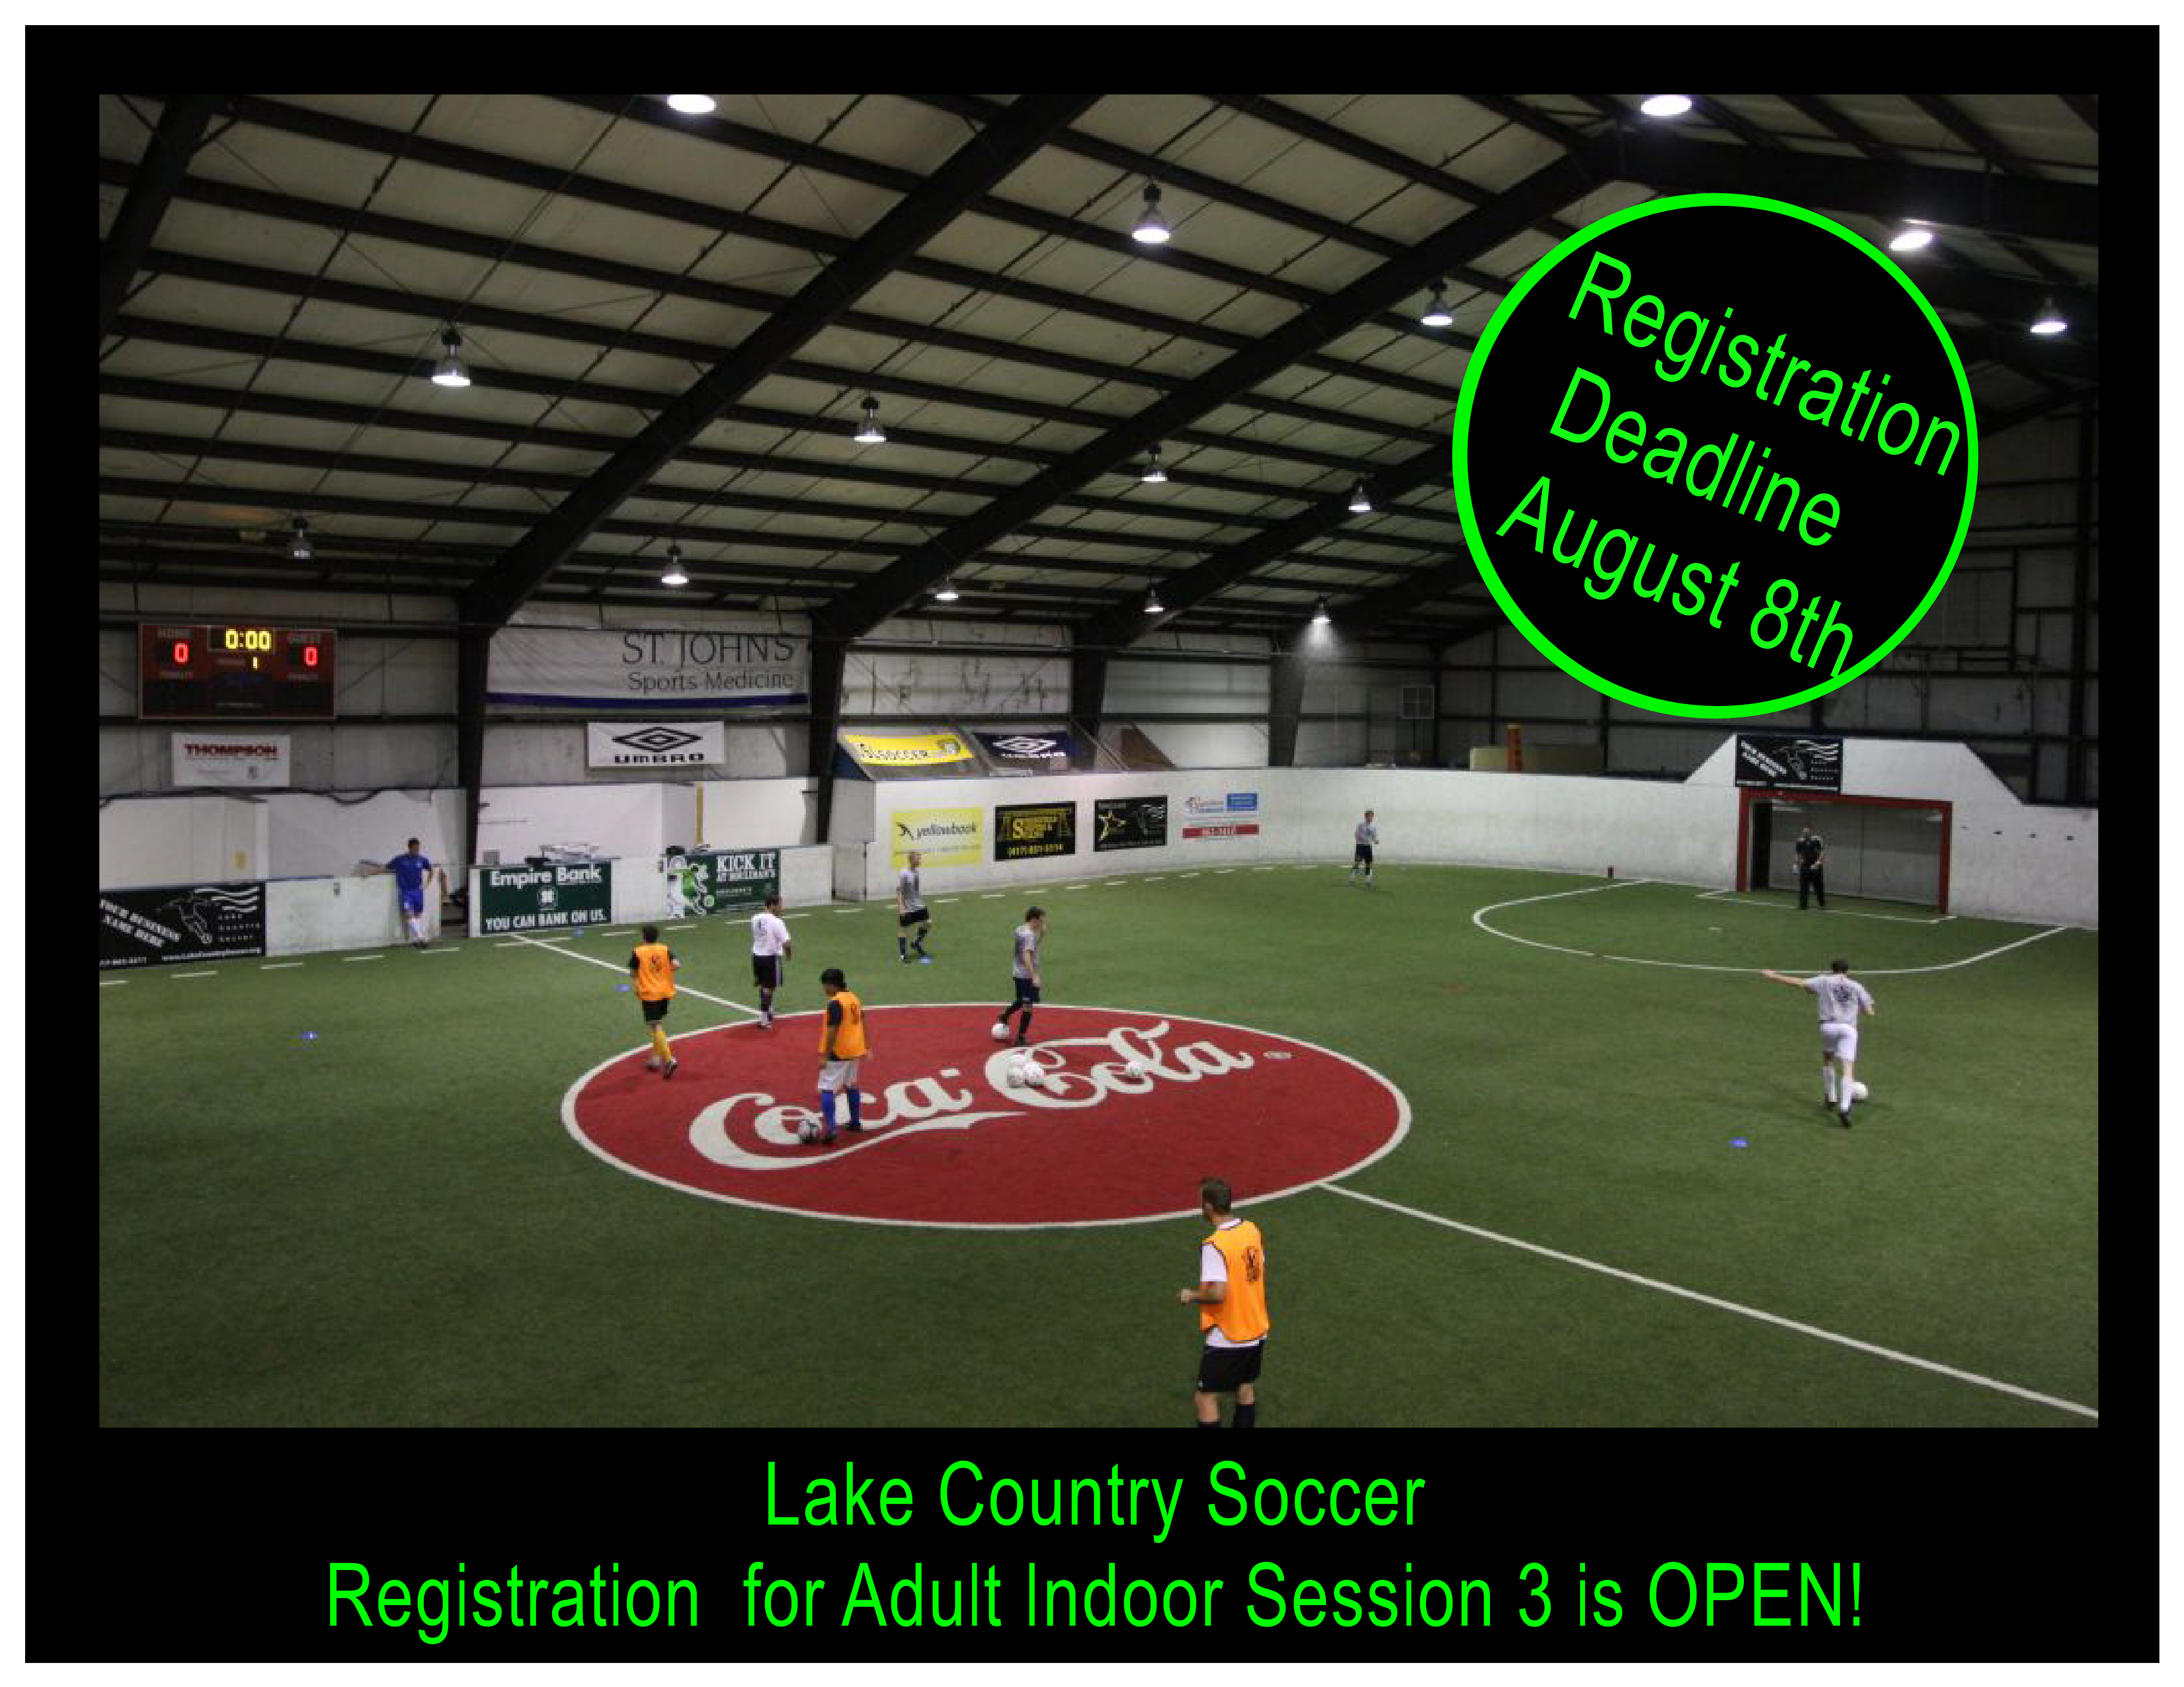 Registration is Open for Adult Indoor Session 3